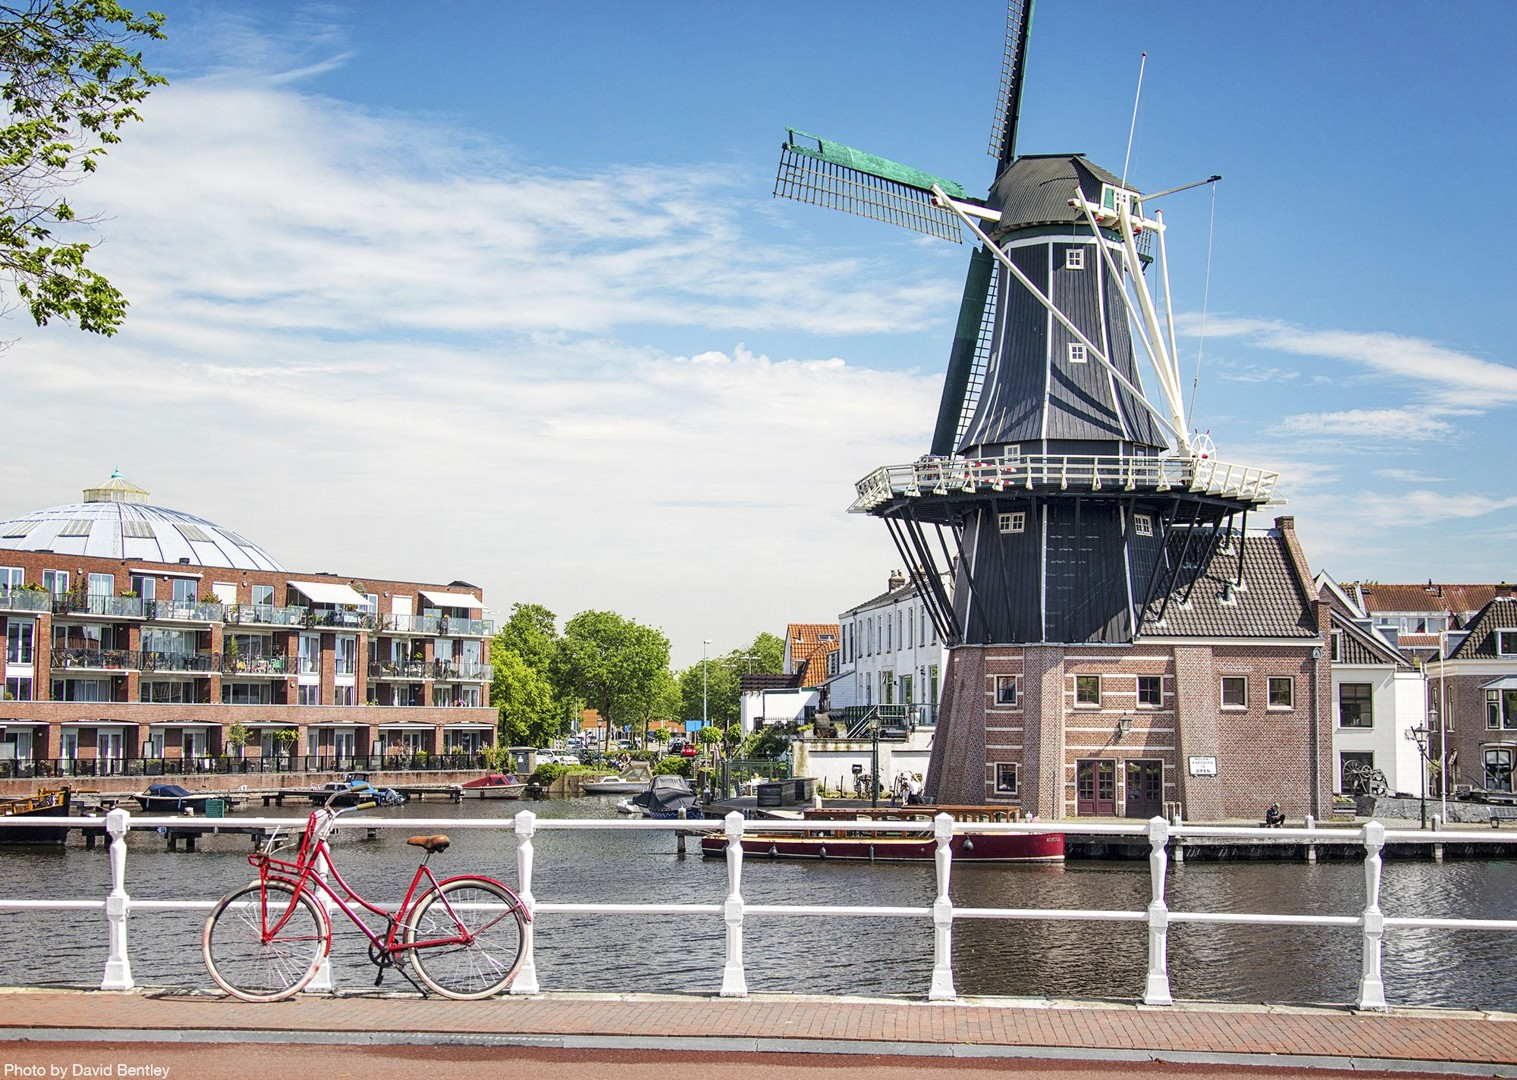 dutch-discoverer-family-cycling-holiday-self-guided-windmills-in-holland.jpg - NEW! Holland - Dutch Discoverer - Canals and Castles - Family Cycling